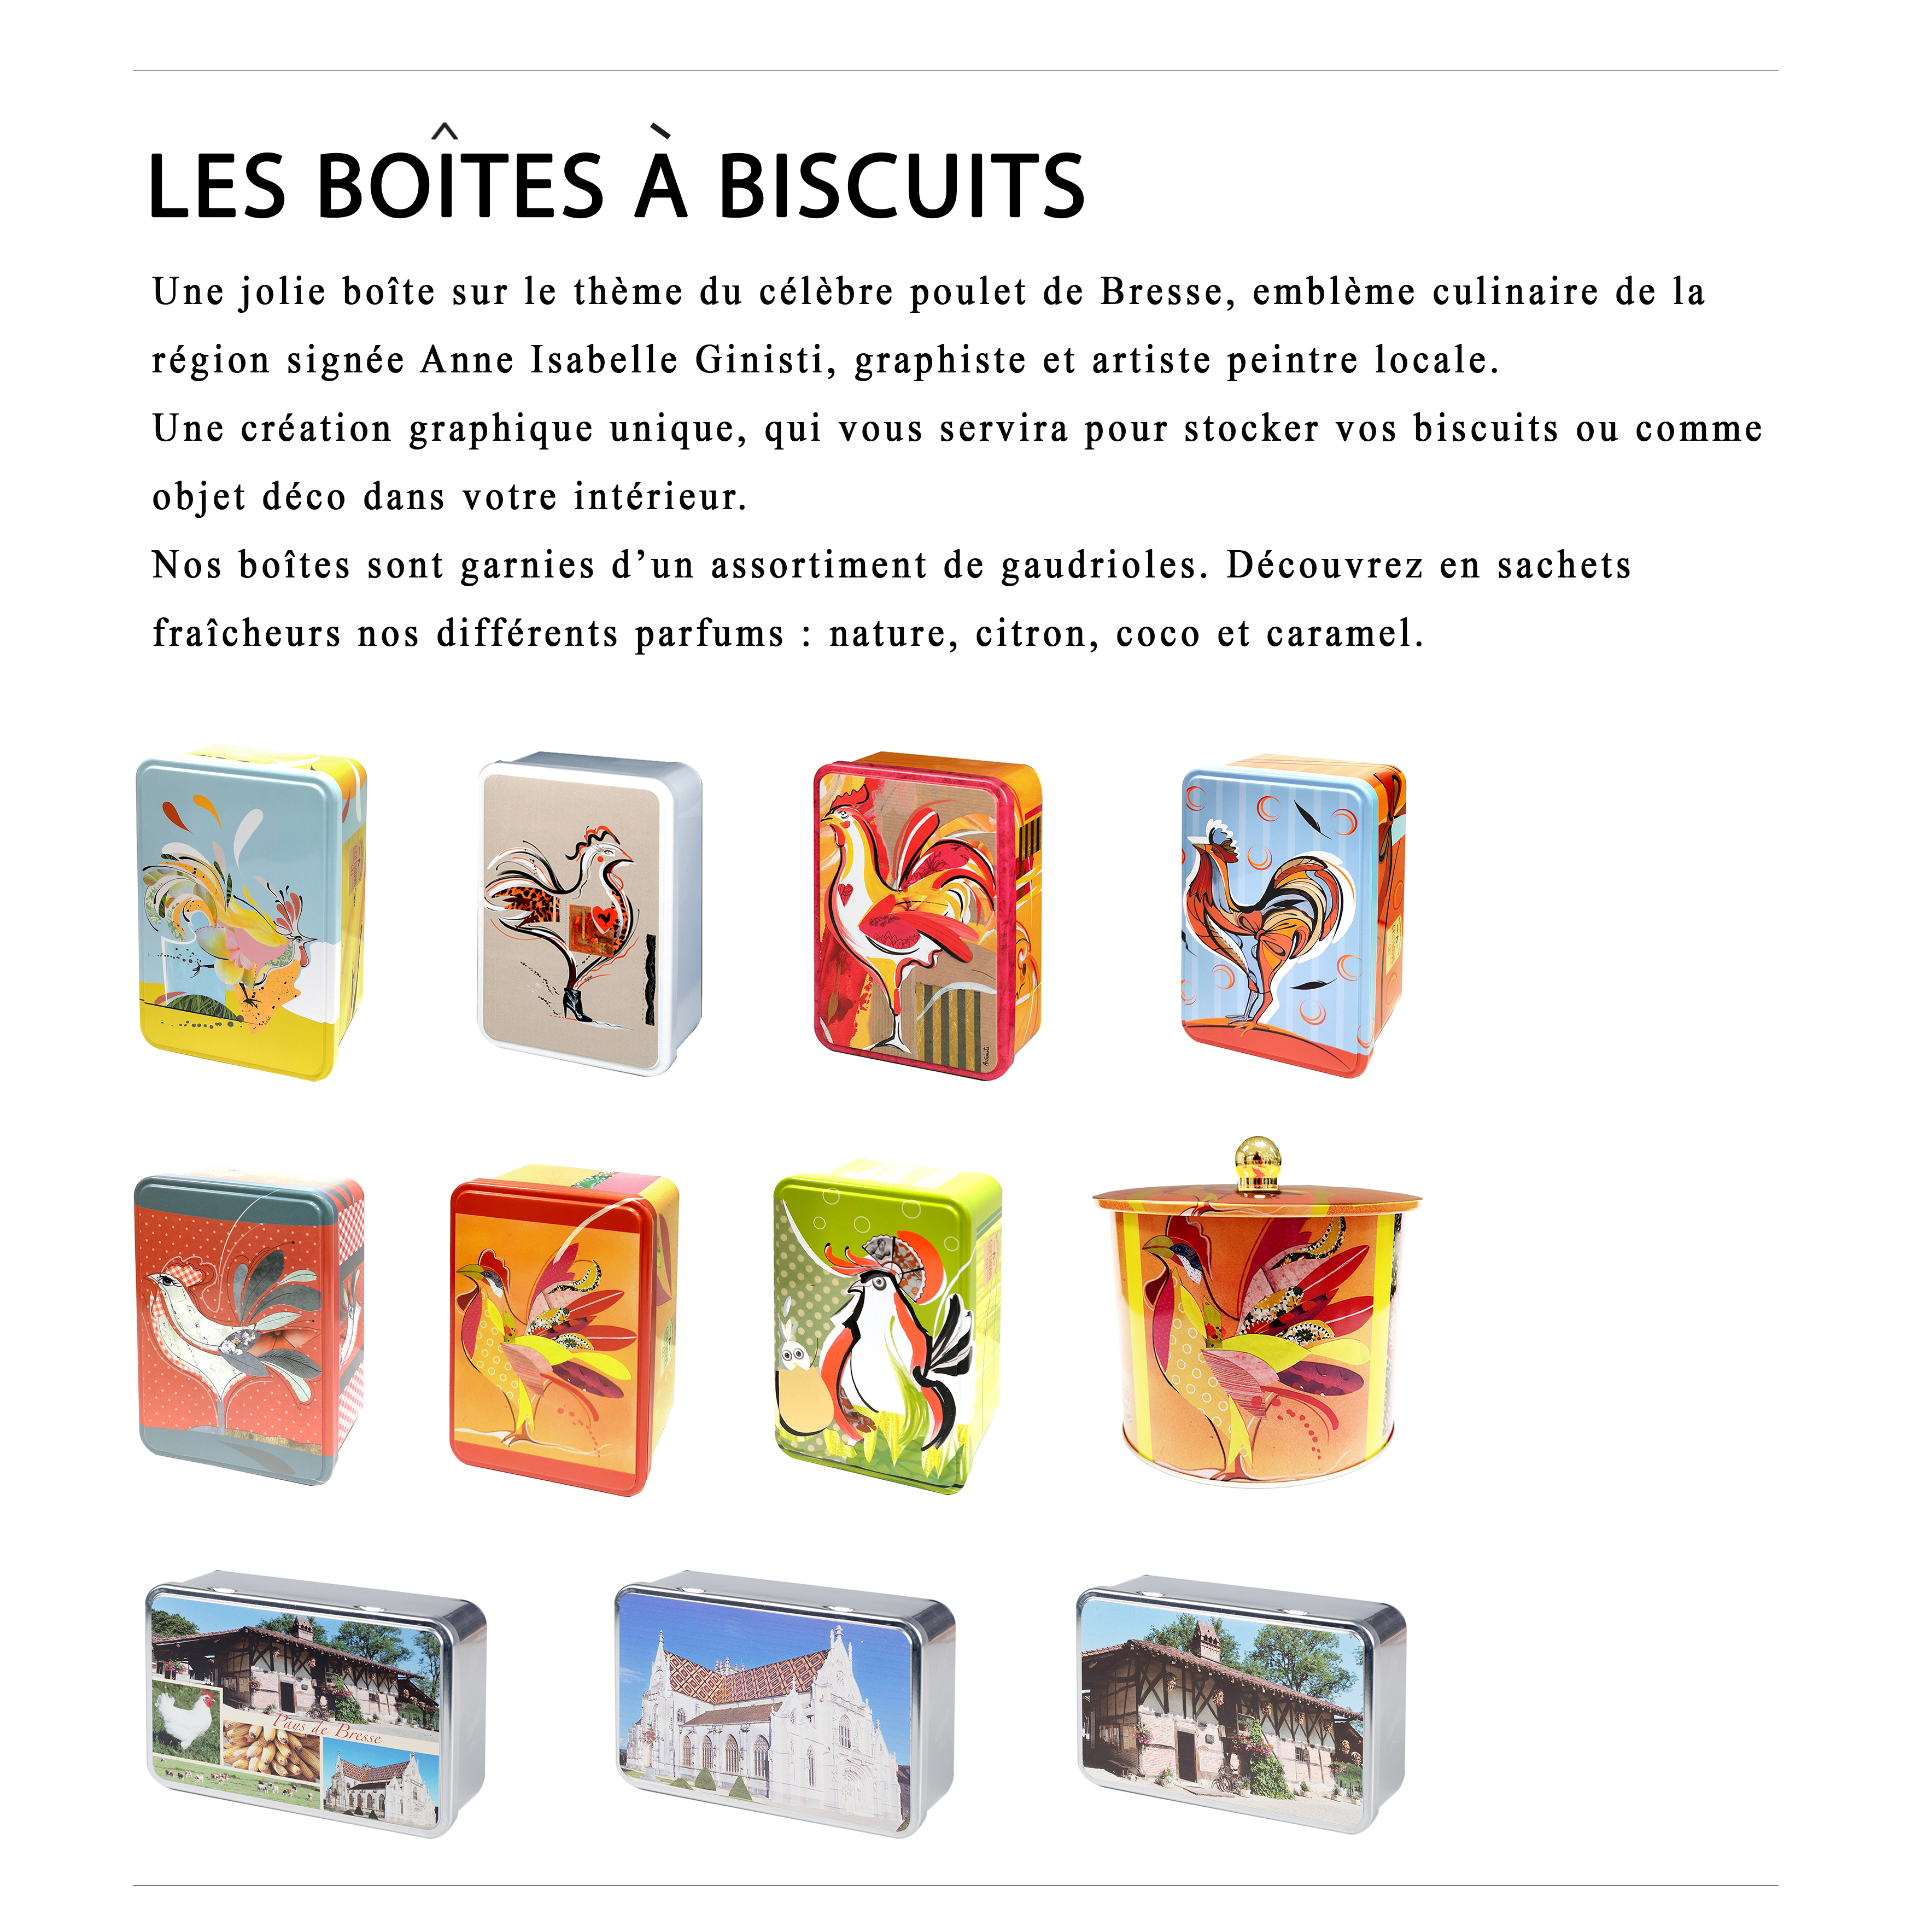 BOITES A BISCUITS